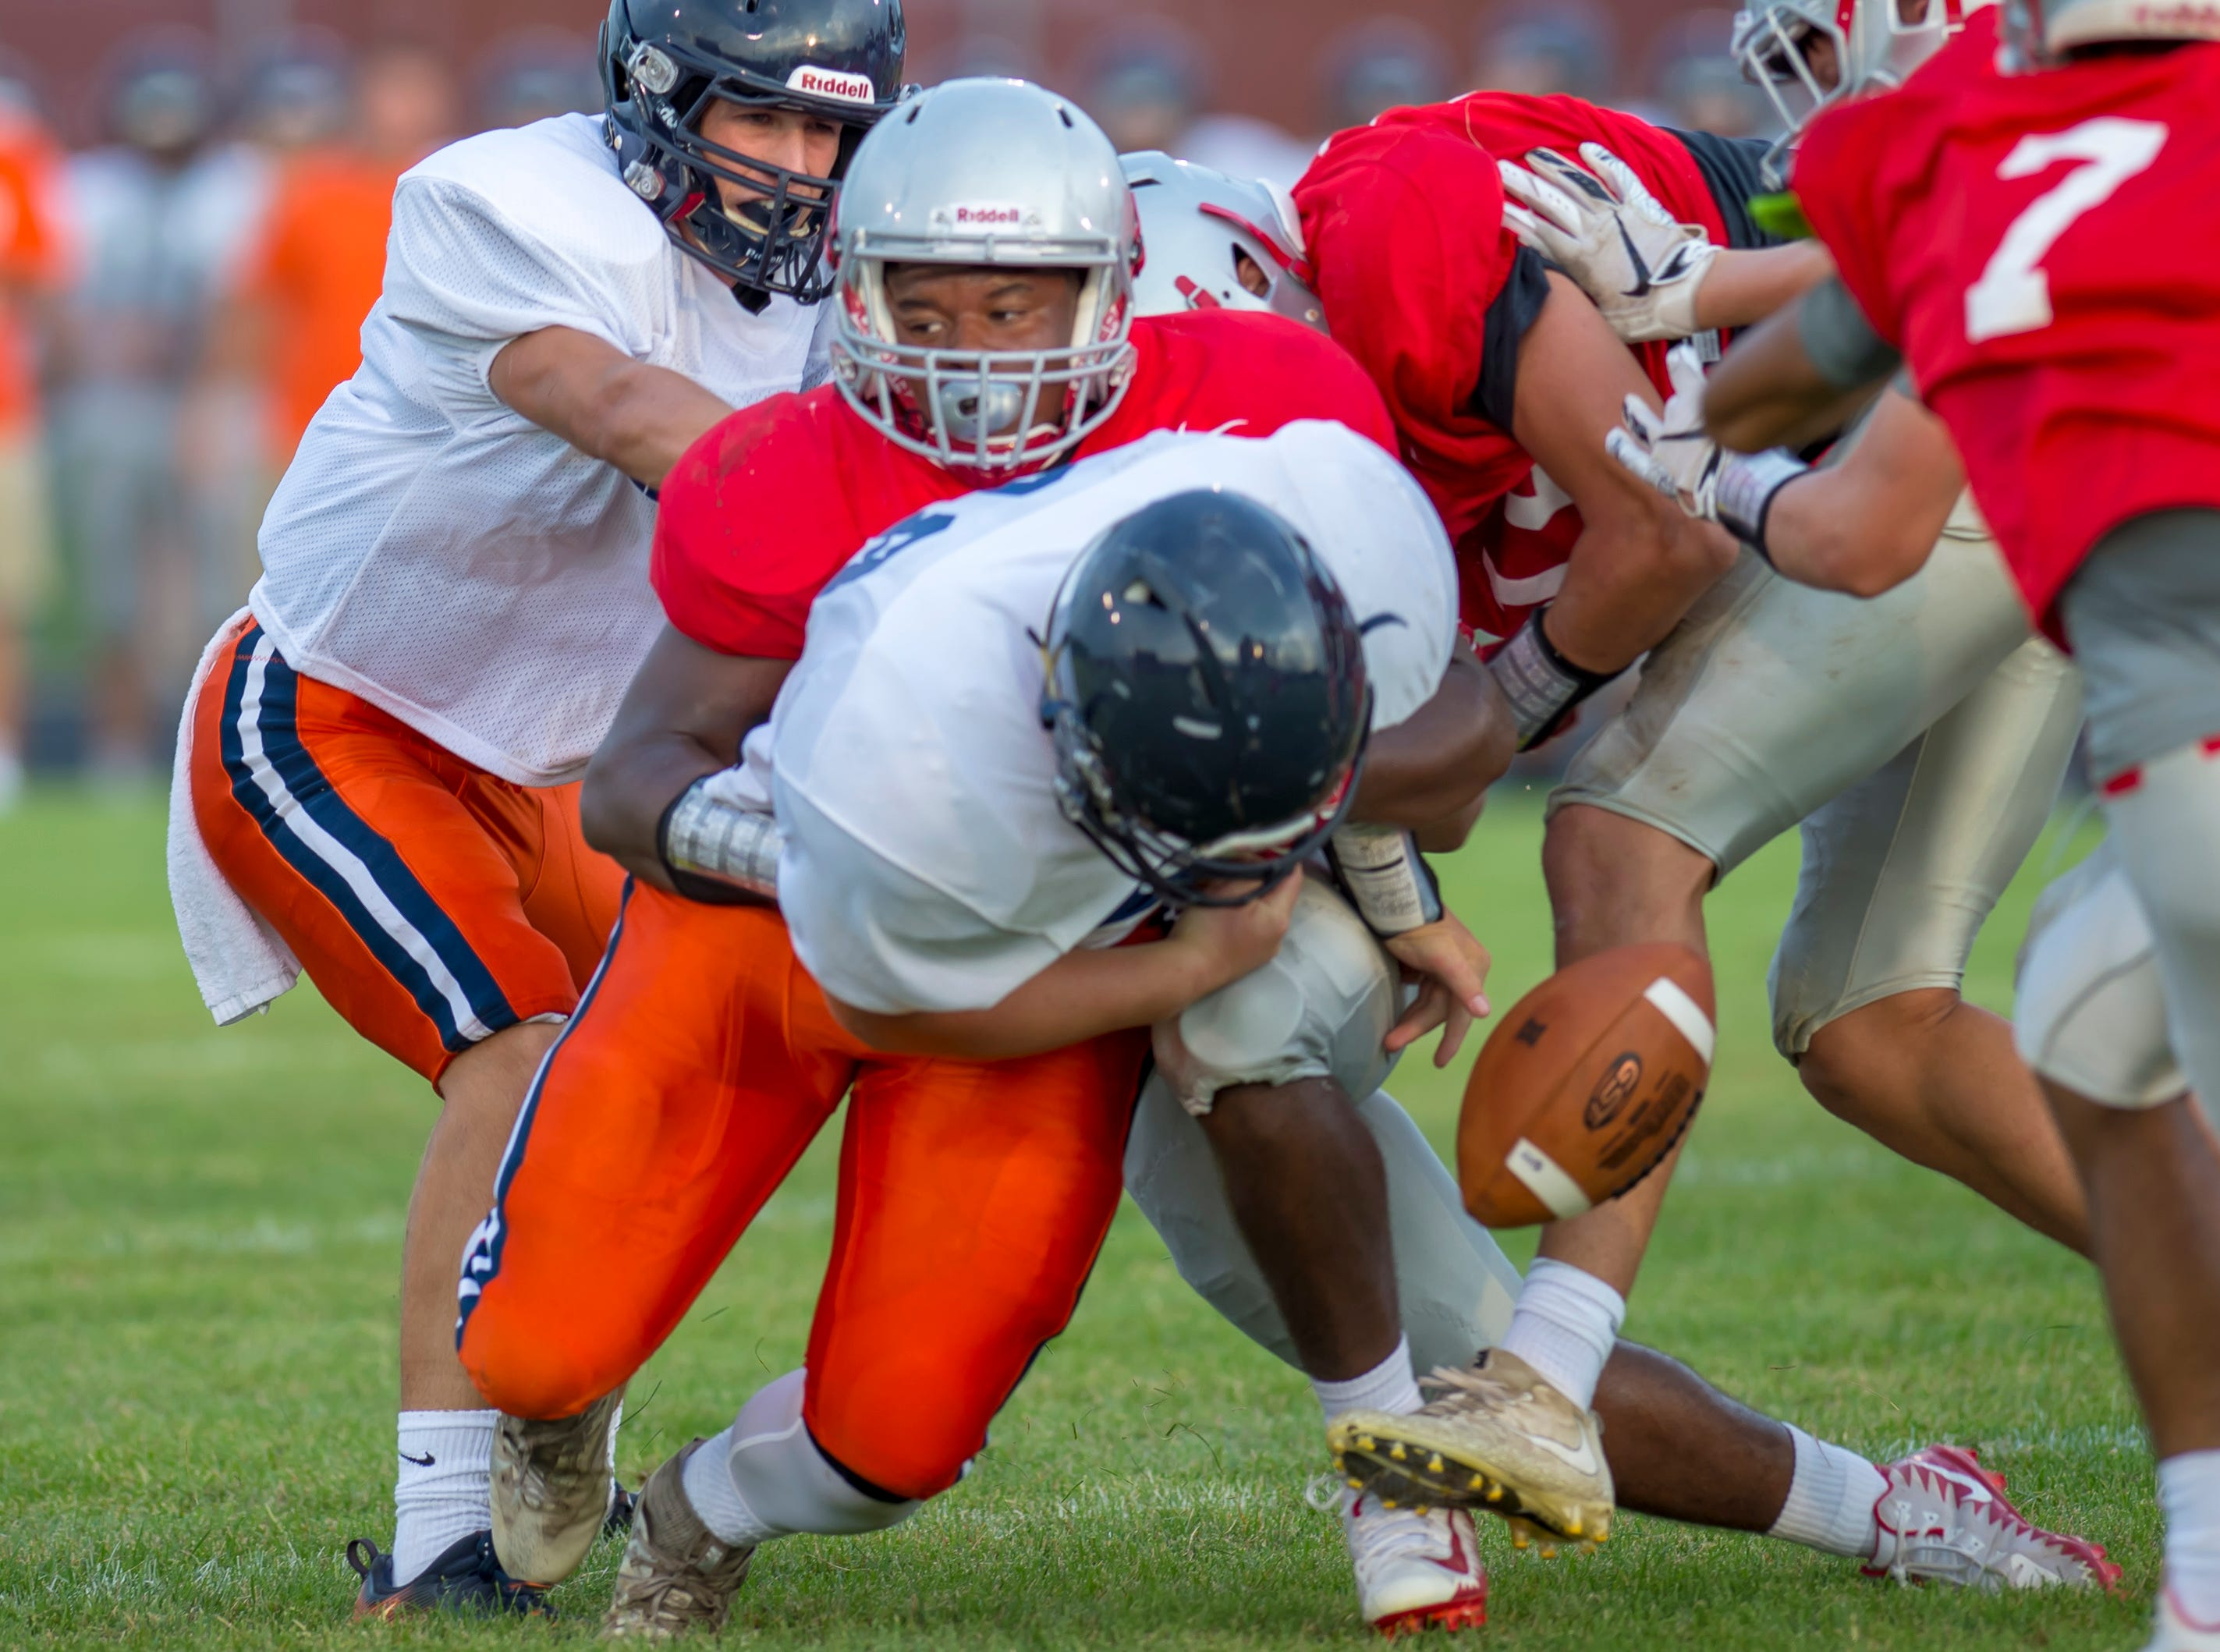 Lamont Johnson forces a fumble in the football scrimmage between the Harrison Raiders and the West Lafayette Red Devils from Gordon Straley Field